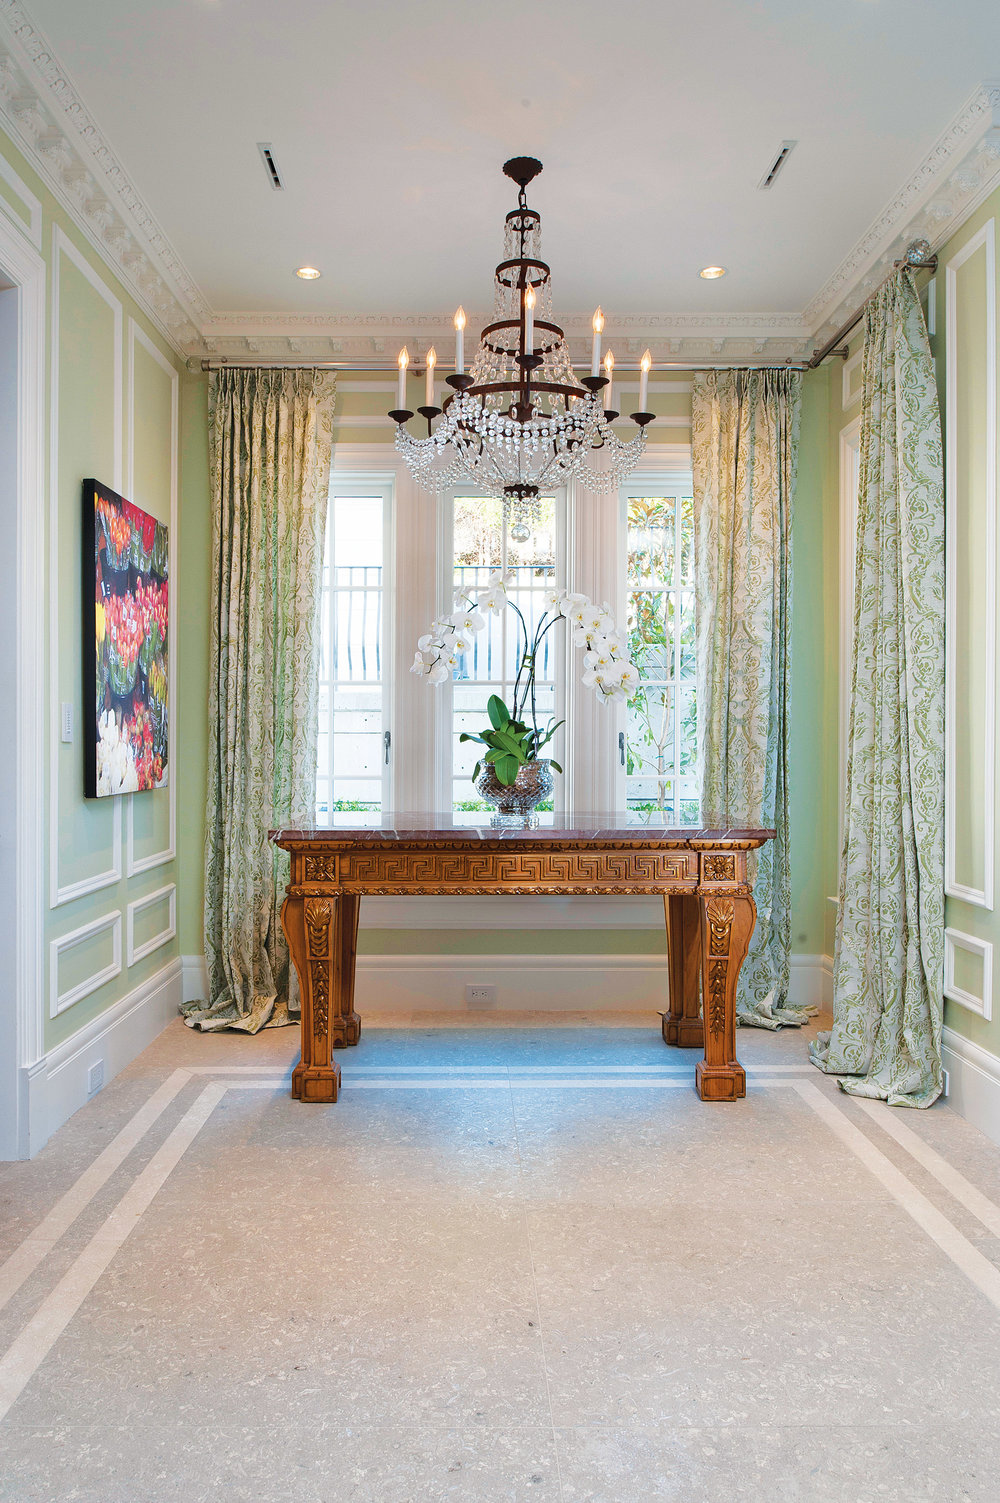 Classic ornamentations like delicate picture-frame molding on the walls and intricate crown molding are paired with a William Kent table and Fortuny curtains.